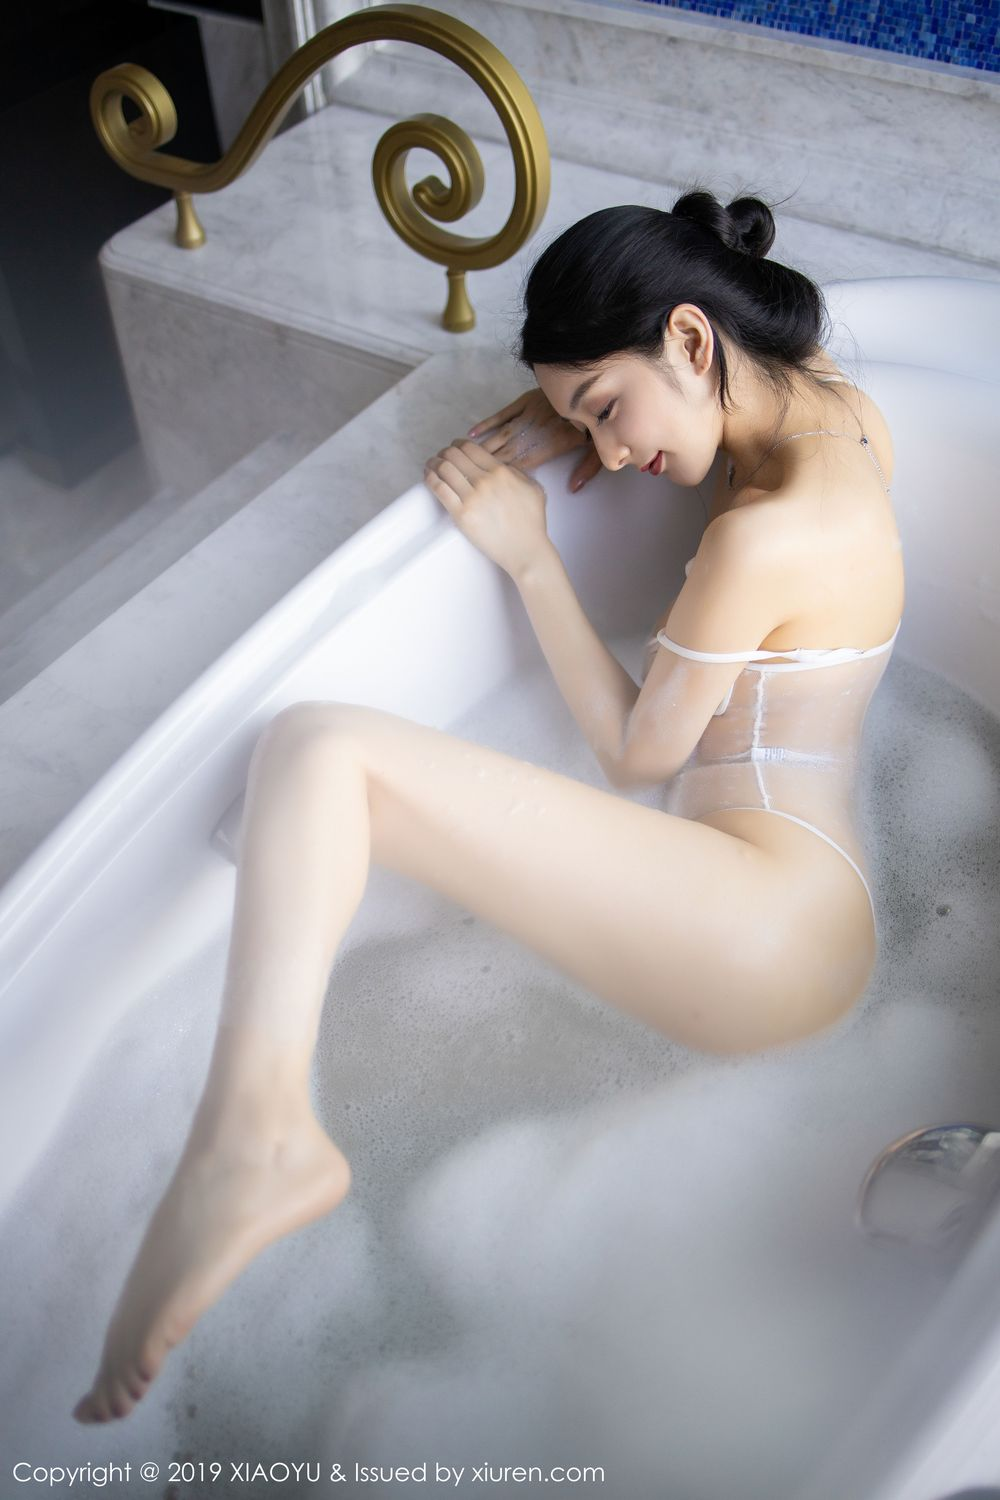 [XiaoYu] Vol.223 Xiao Re Ba 39P, Di Yi, Tall, Wet, XiaoYu